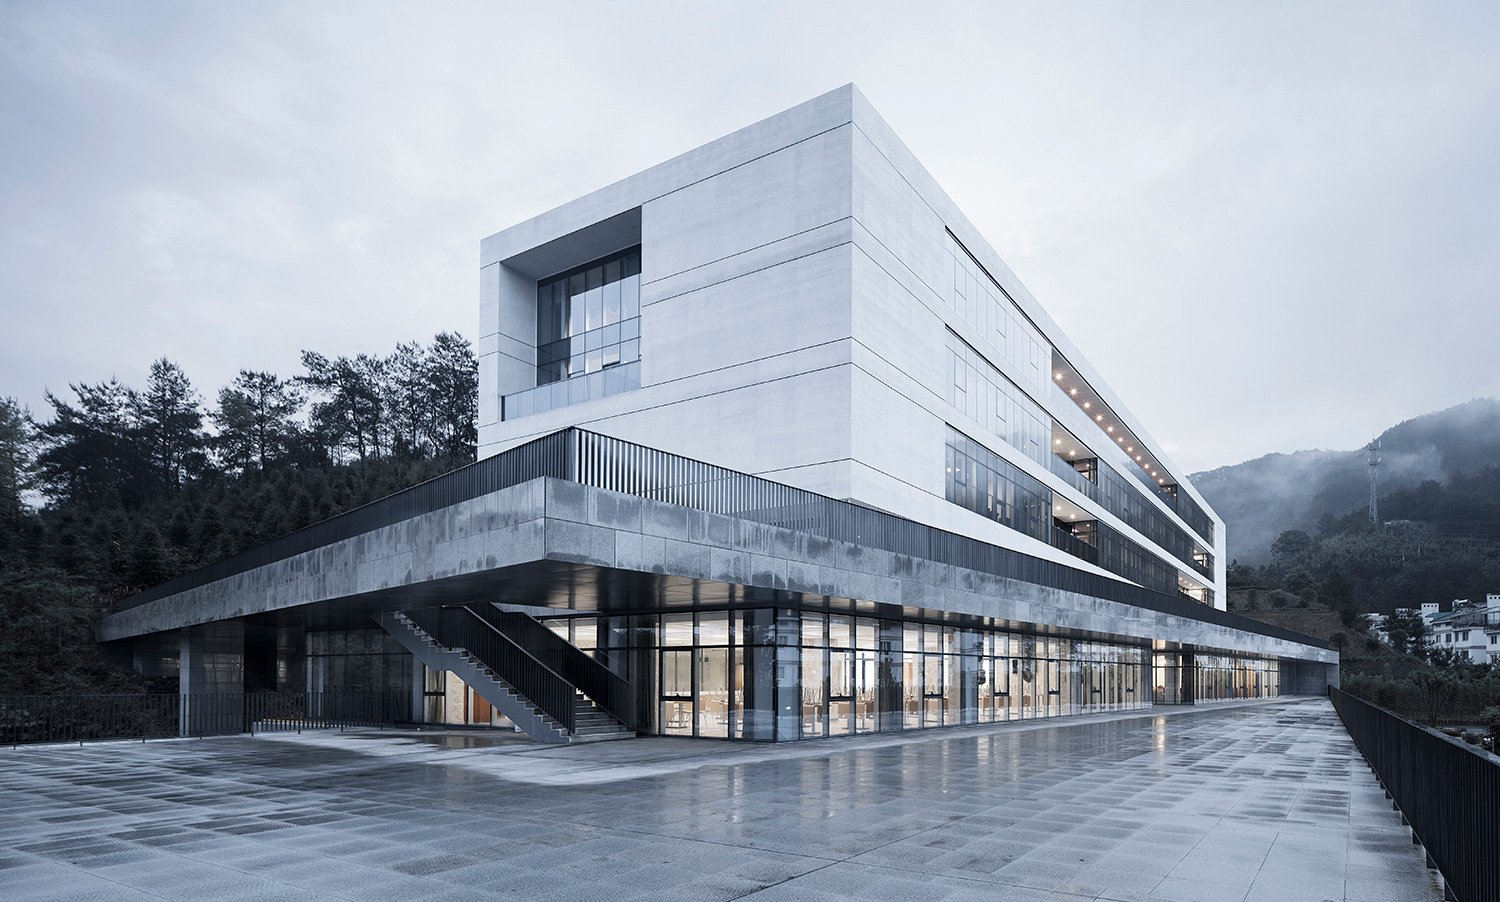 Relationship between the building and the mountain on the 2nd floor platform ©Zhao Qiang